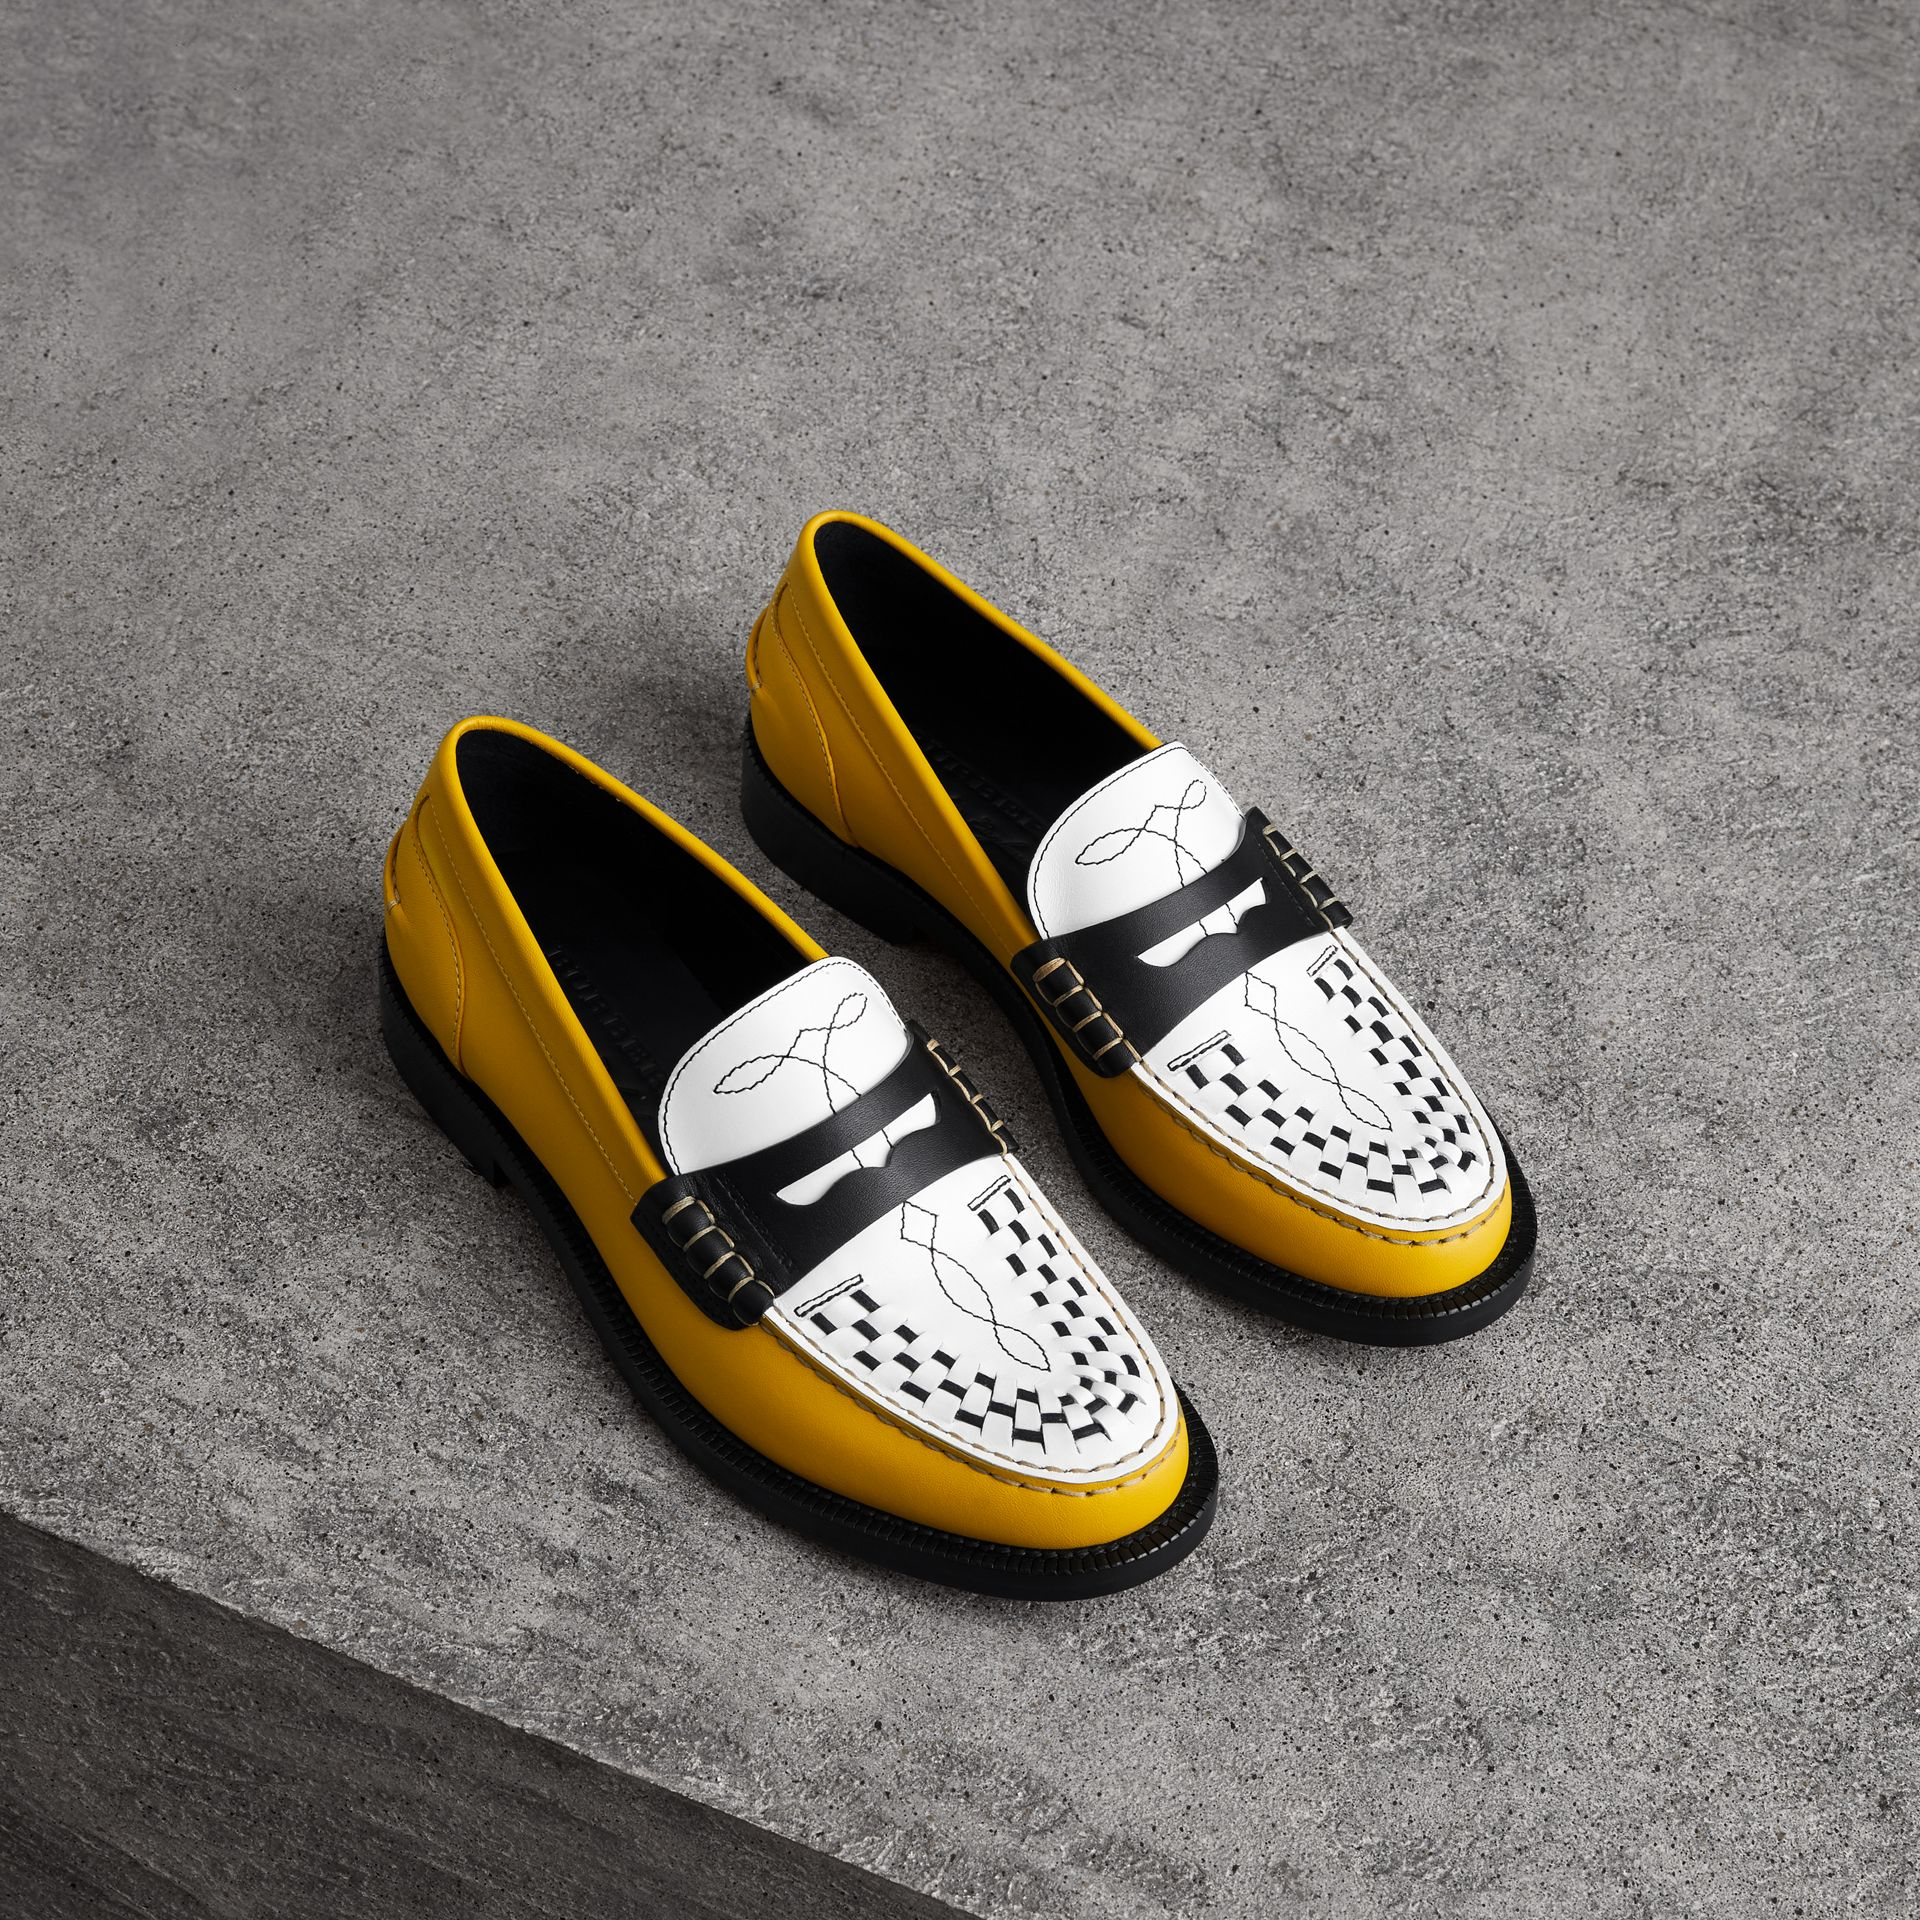 Woven-toe Leather Loafers in Saffron Yellow - Women | Burberry United States - gallery image 0